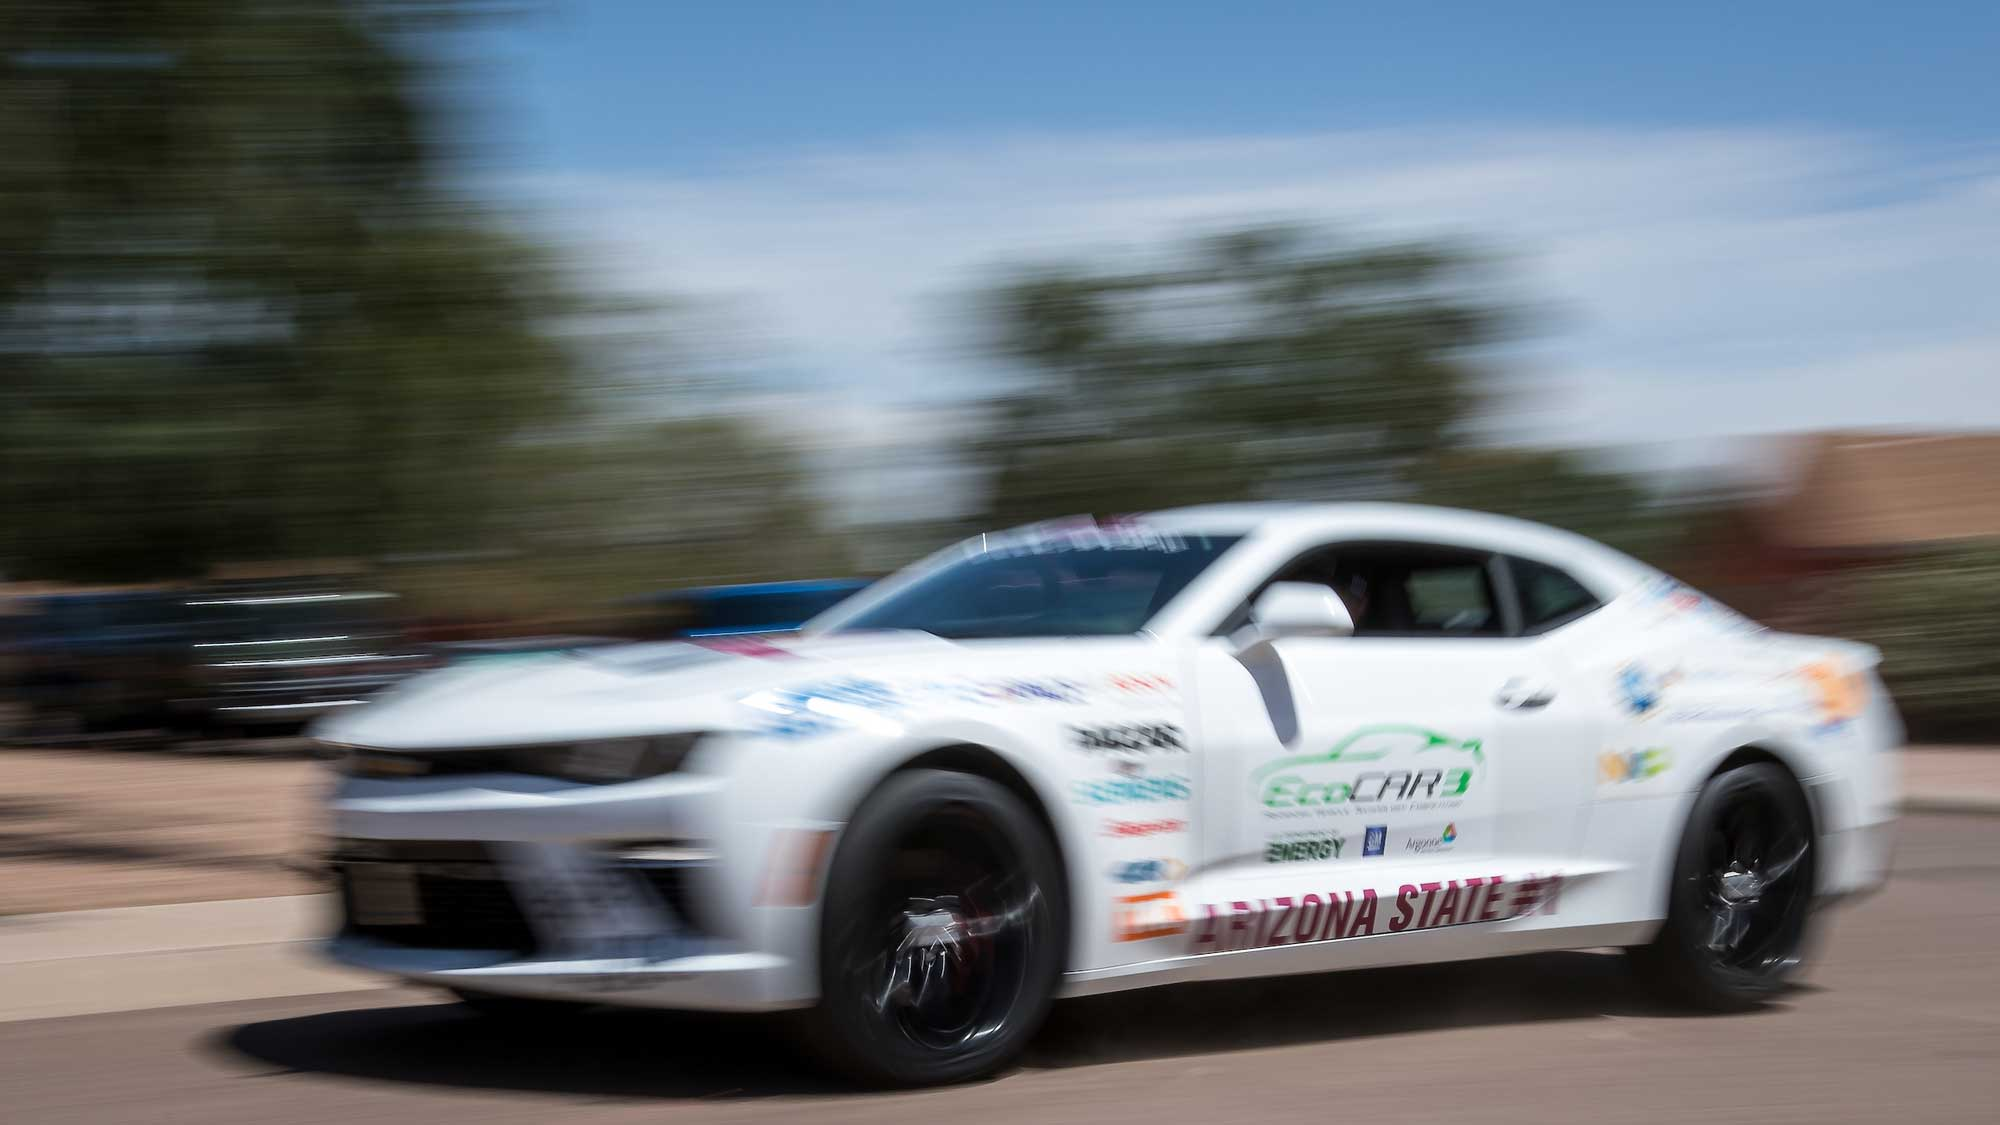 The hybrid Camero, EcoCAR3, is shown racing by in a blur